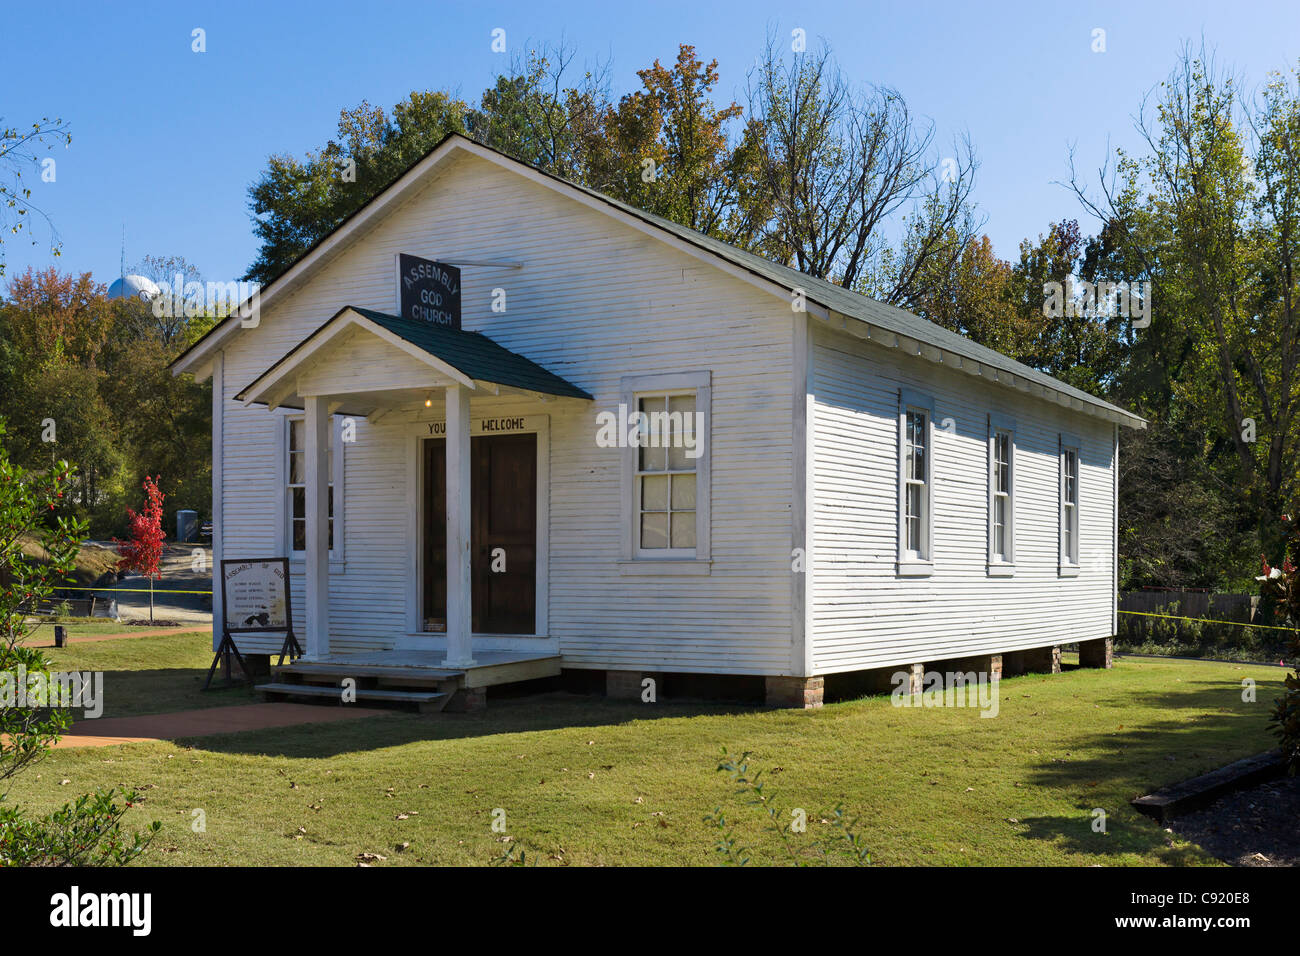 Elvis Presley's local childhood church, now at Elvis Presley's Birthplace, Tupelo, Mississippi, USA - Stock Image